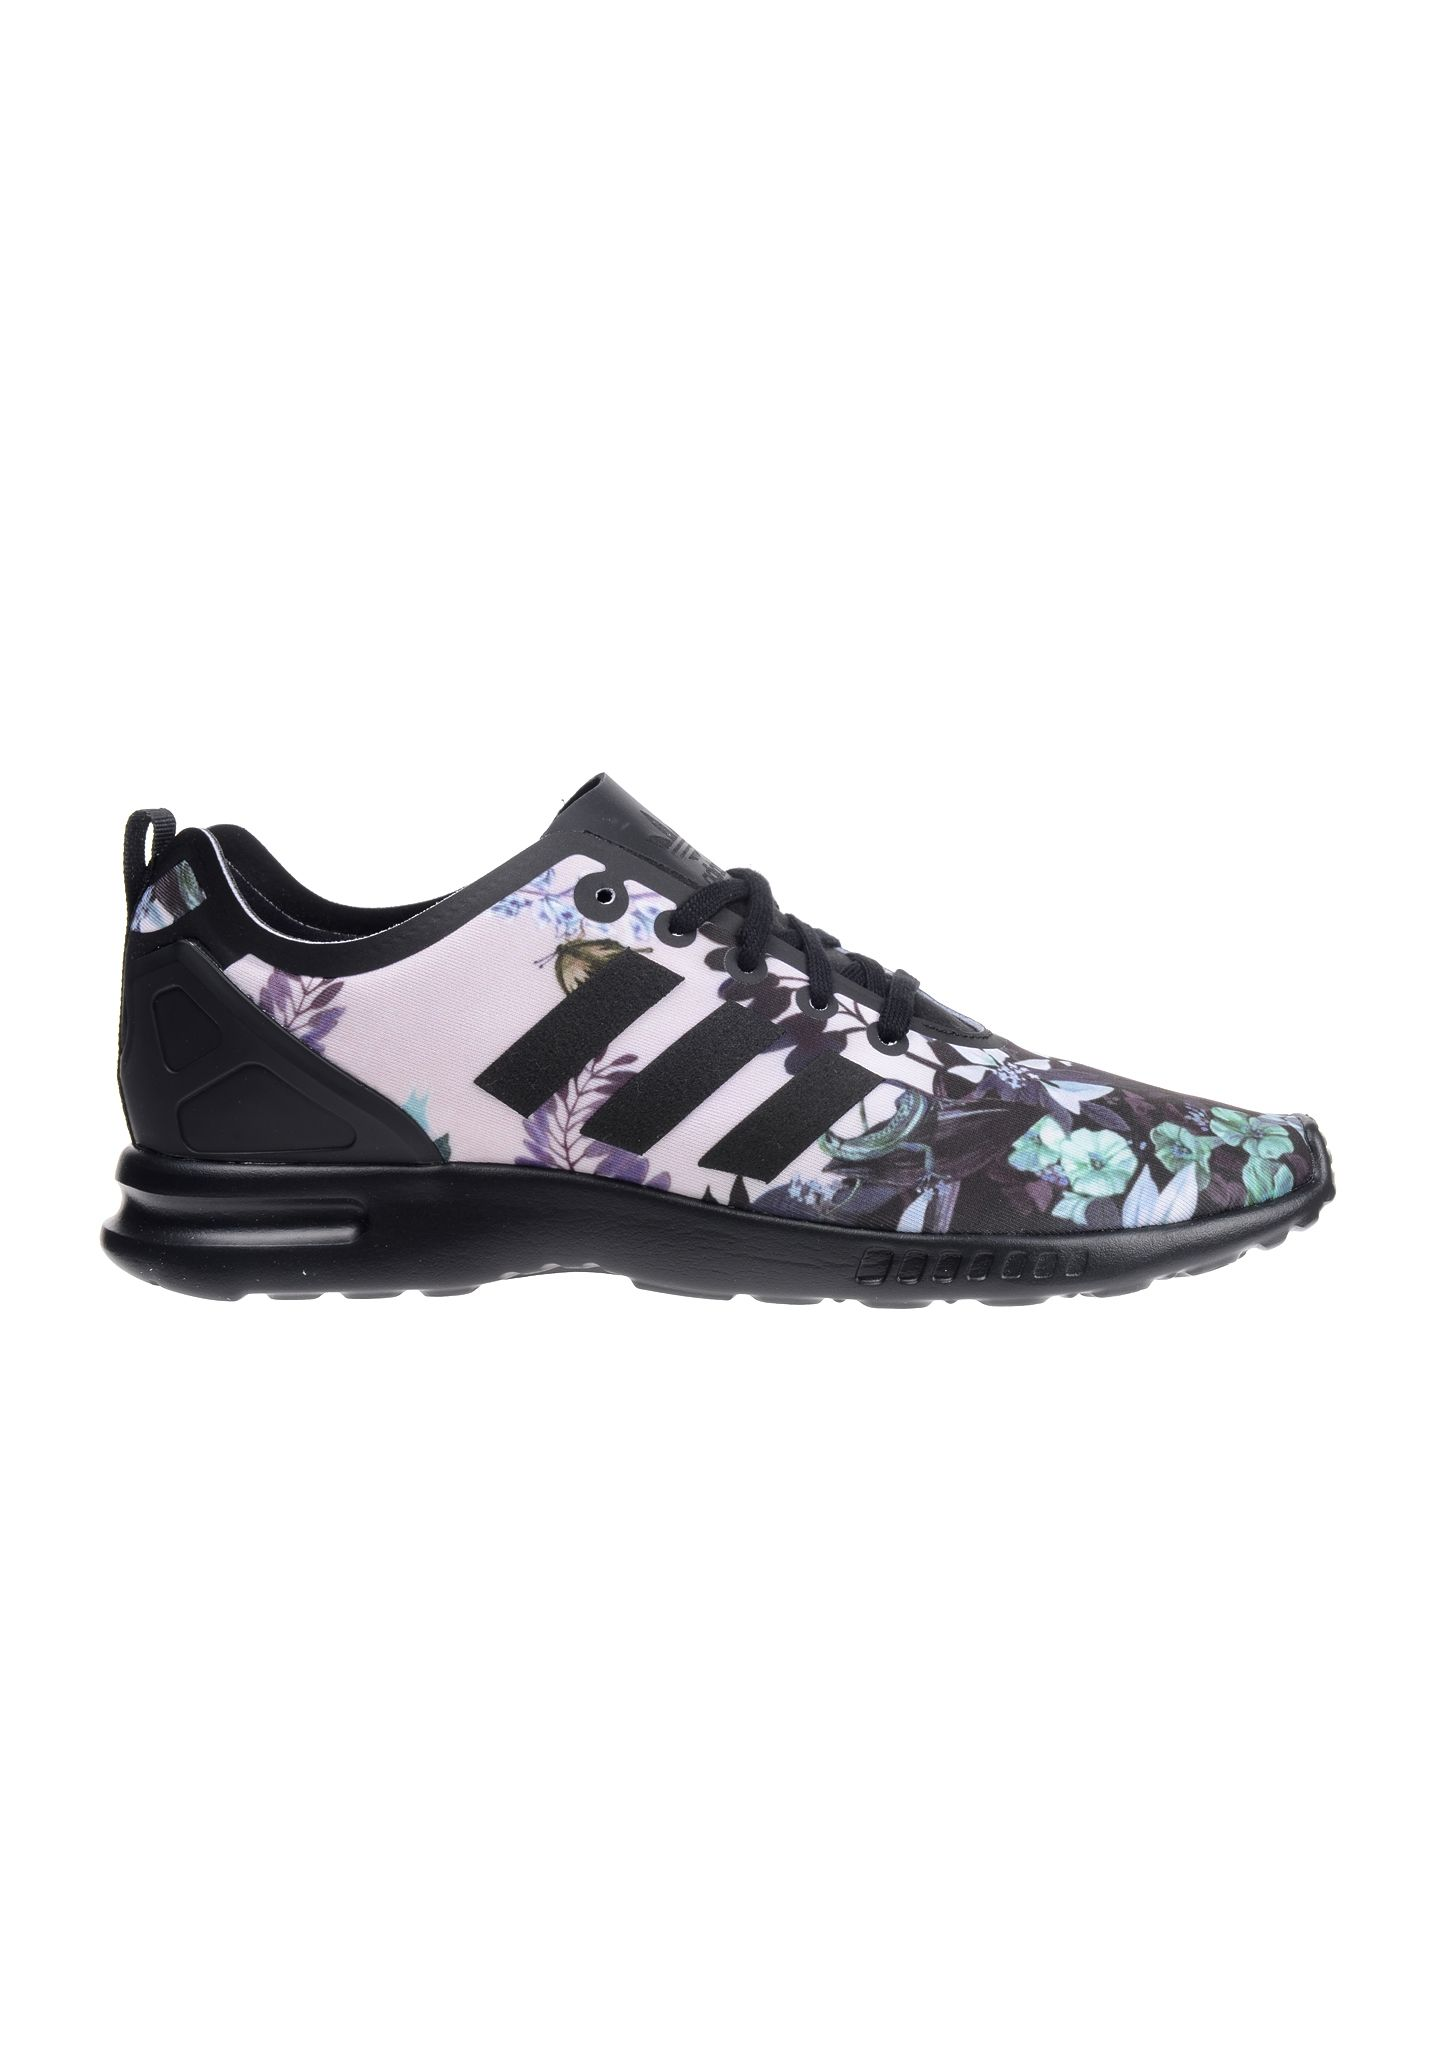 Womens Zx Flux Adv Smooth Low-Top Sneakers adidas